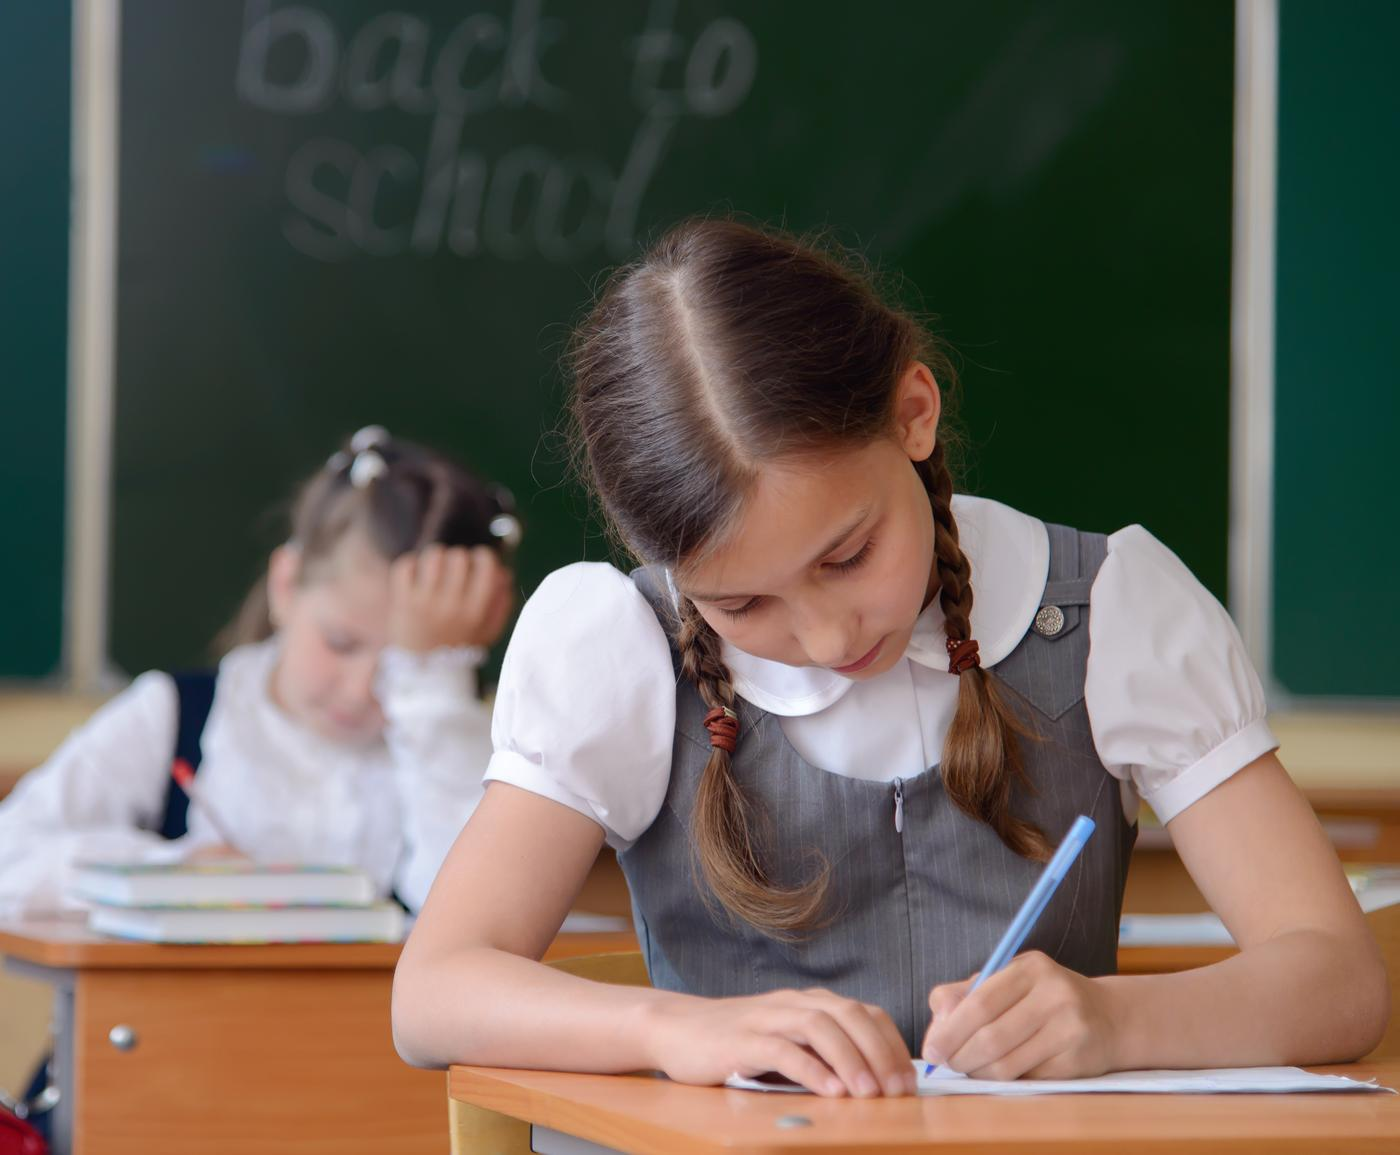 Two schoolgirls sitting in class and writing against blackboard with 'back to school' on background. IMAGE FOR RF ONLY - This image has been previously licensed for Royalty Free Kolett/Kolett